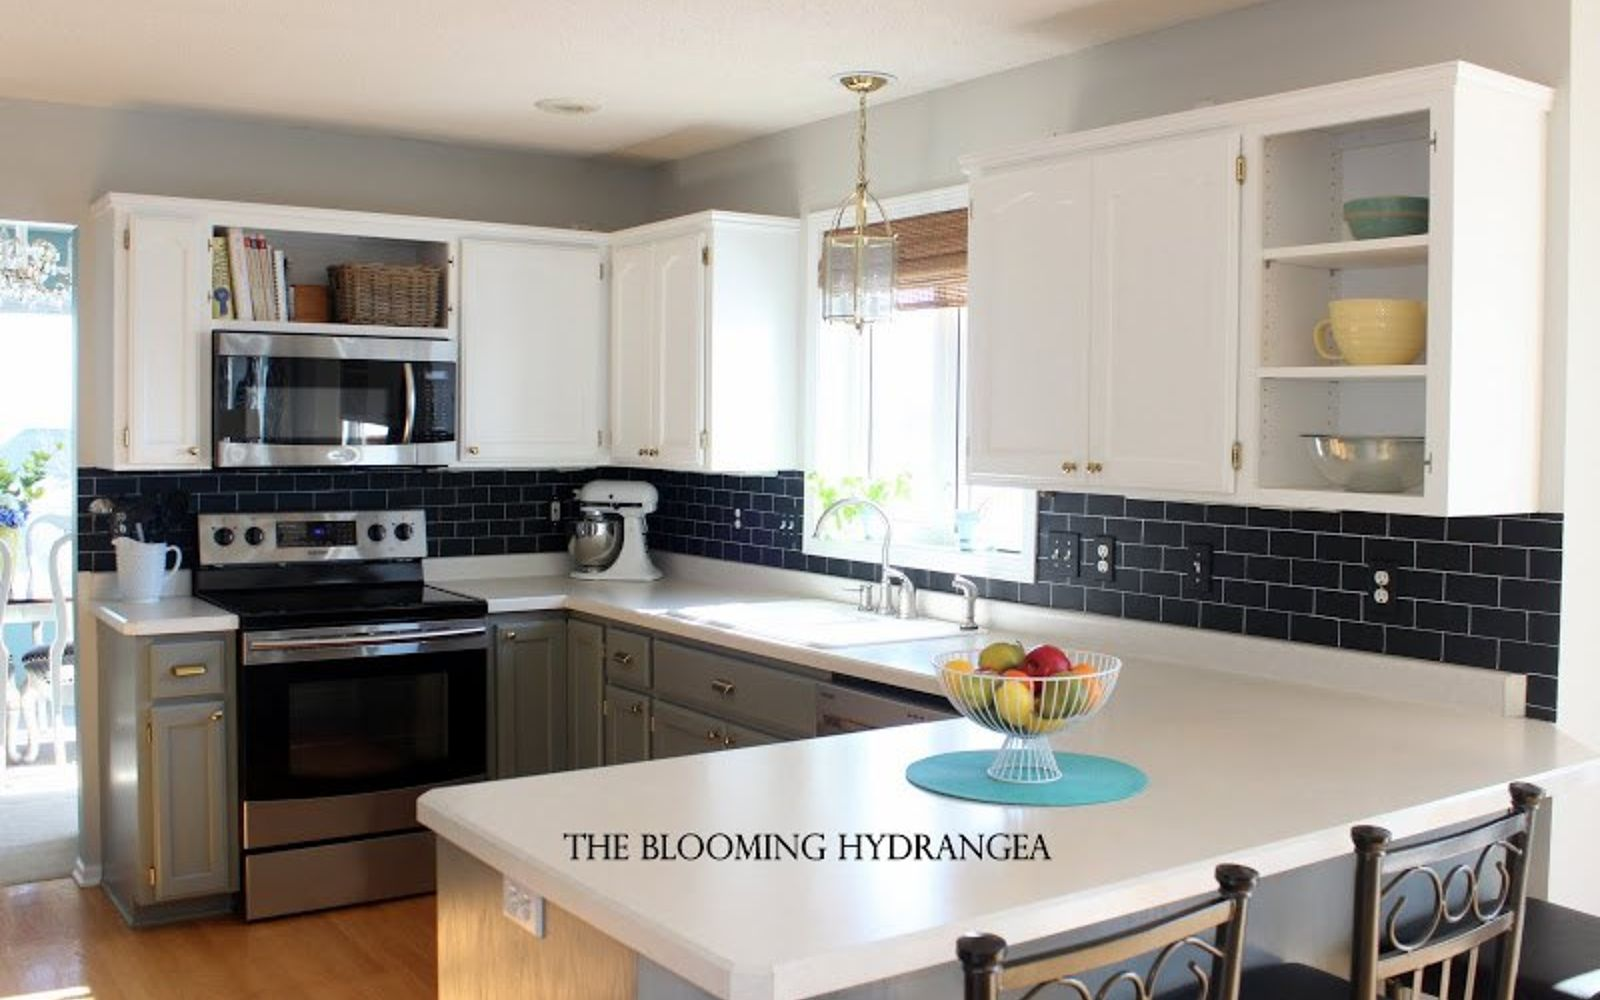 Kitchen Backsplash 13 incredible kitchen backsplash ideas that aren't tile | hometalk